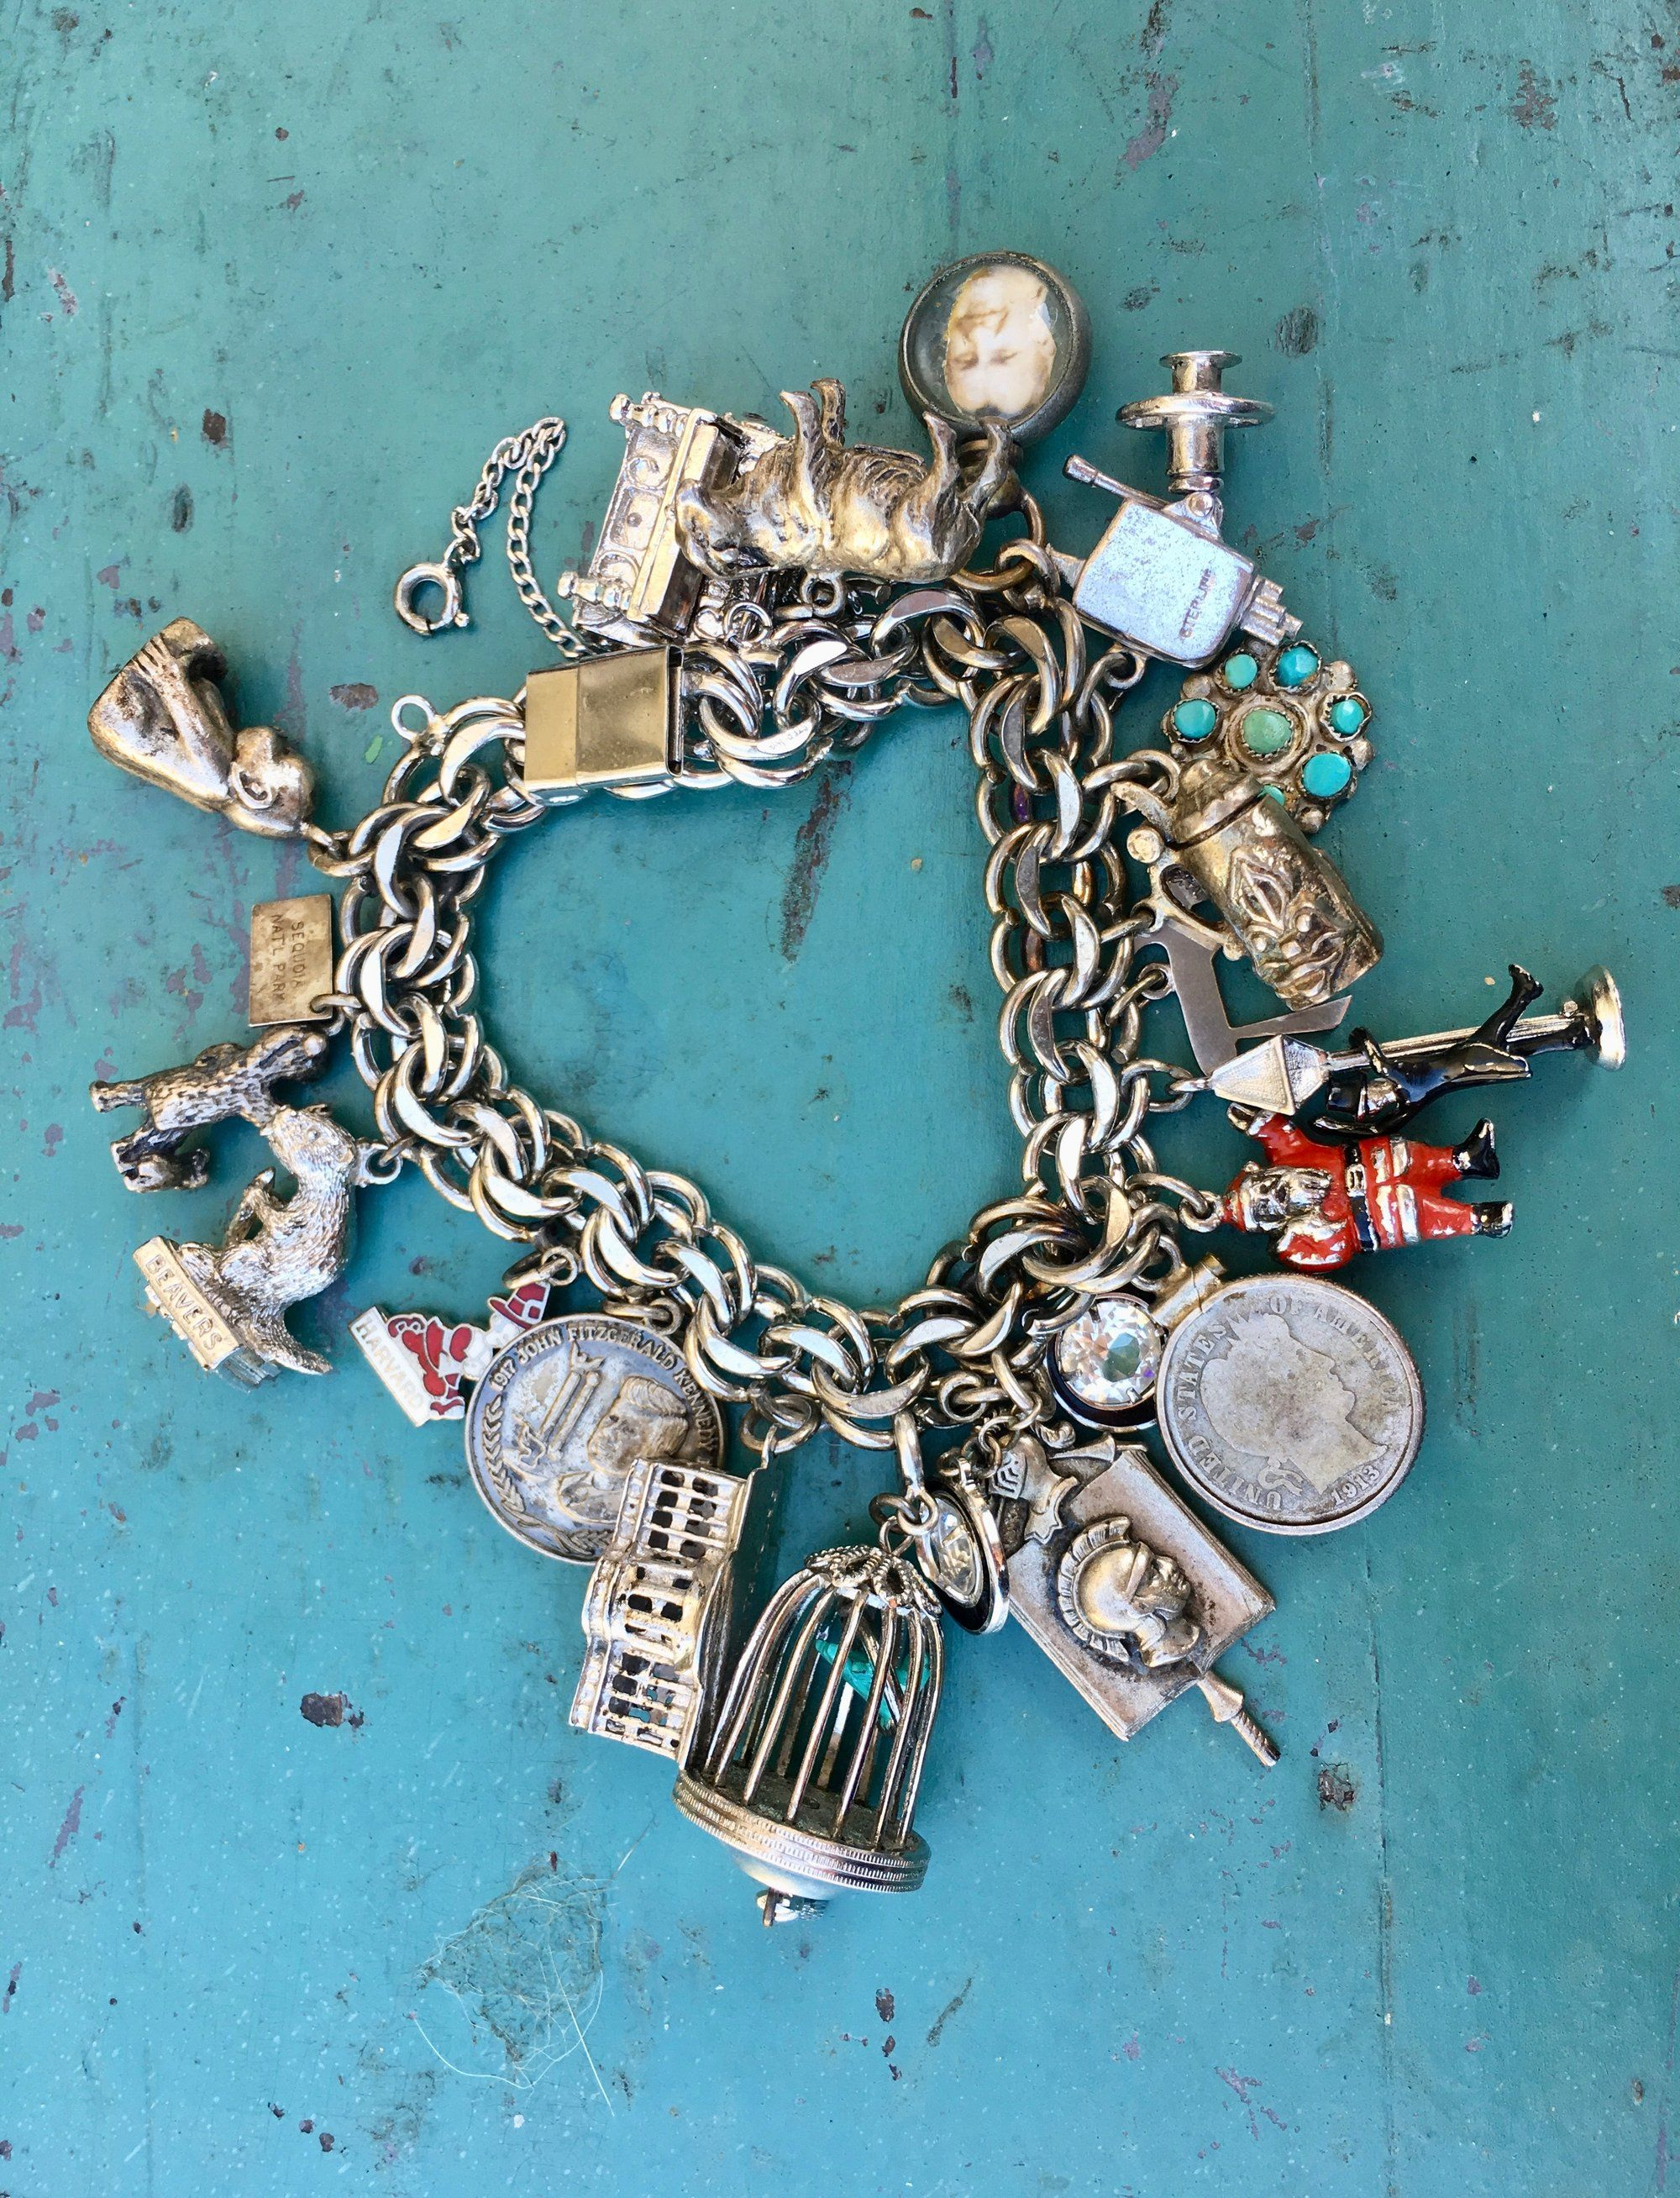 Heavy sterling silver bracelet loaded with 20 charms in